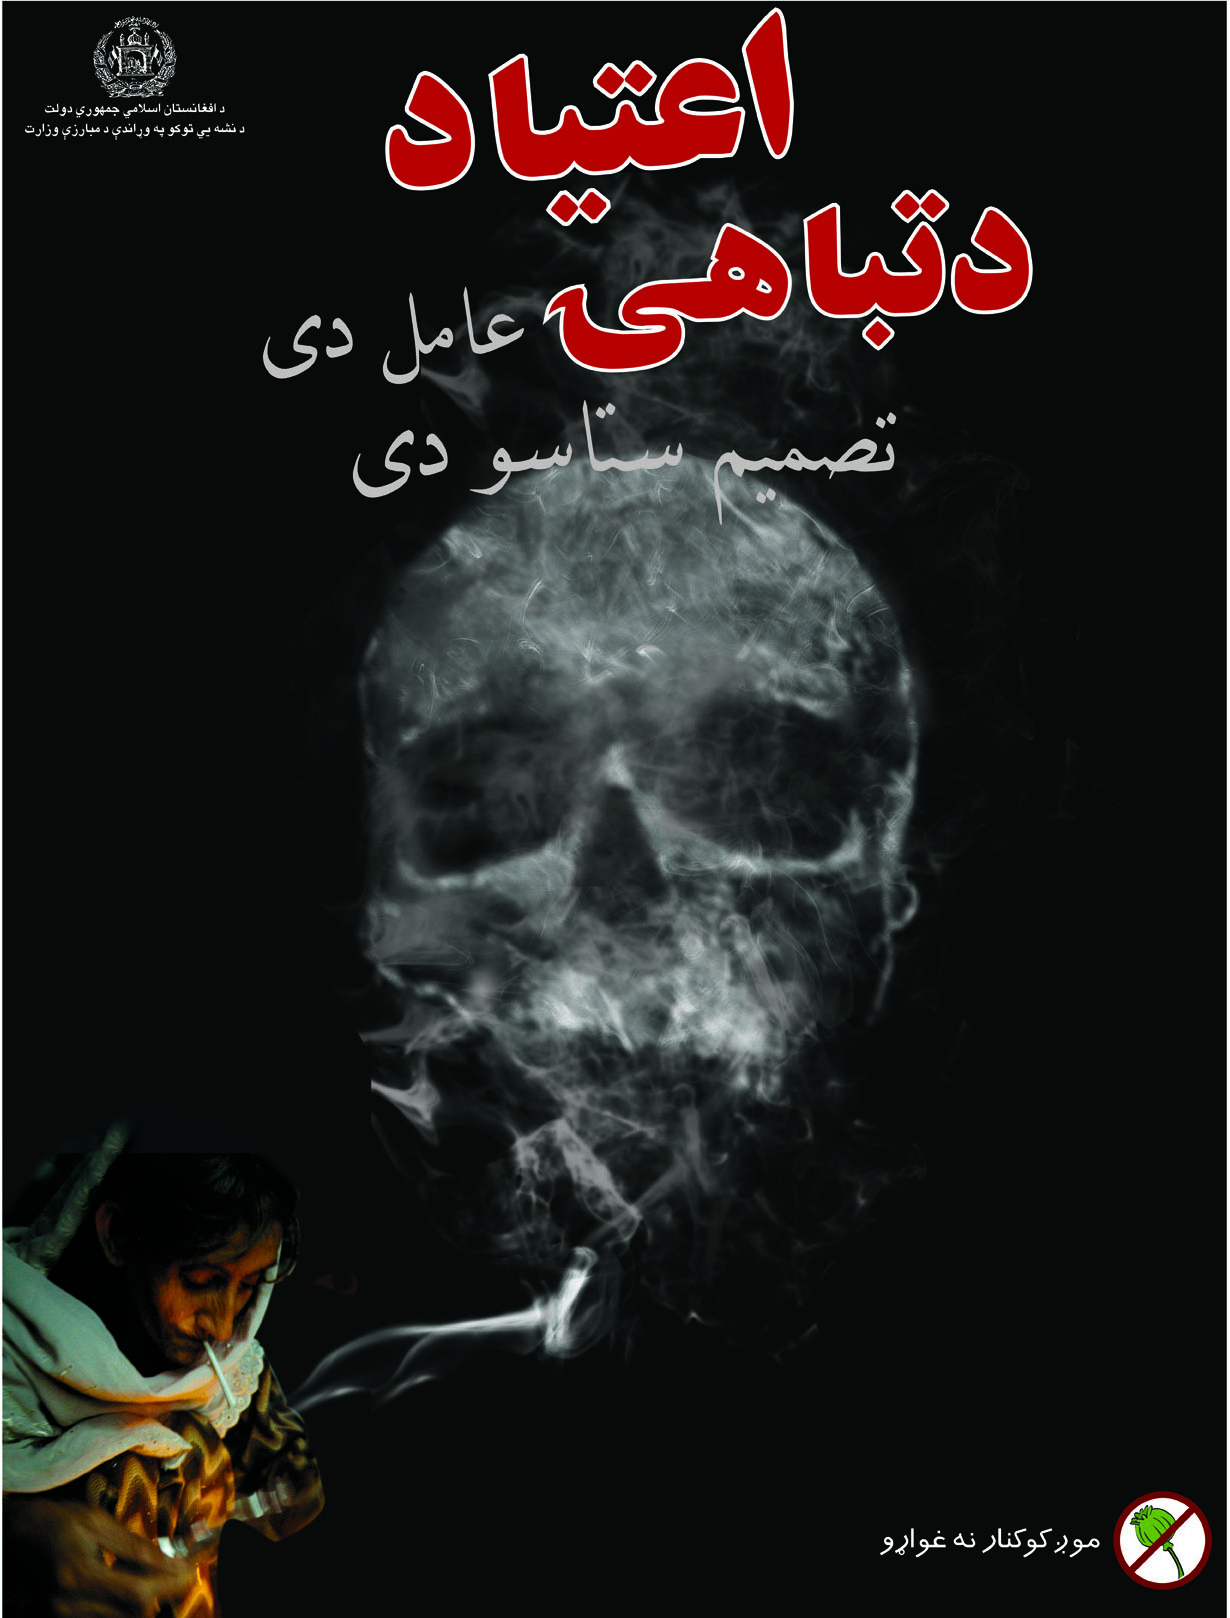 Counter Narcotic Poster - Afghanistan - 2007